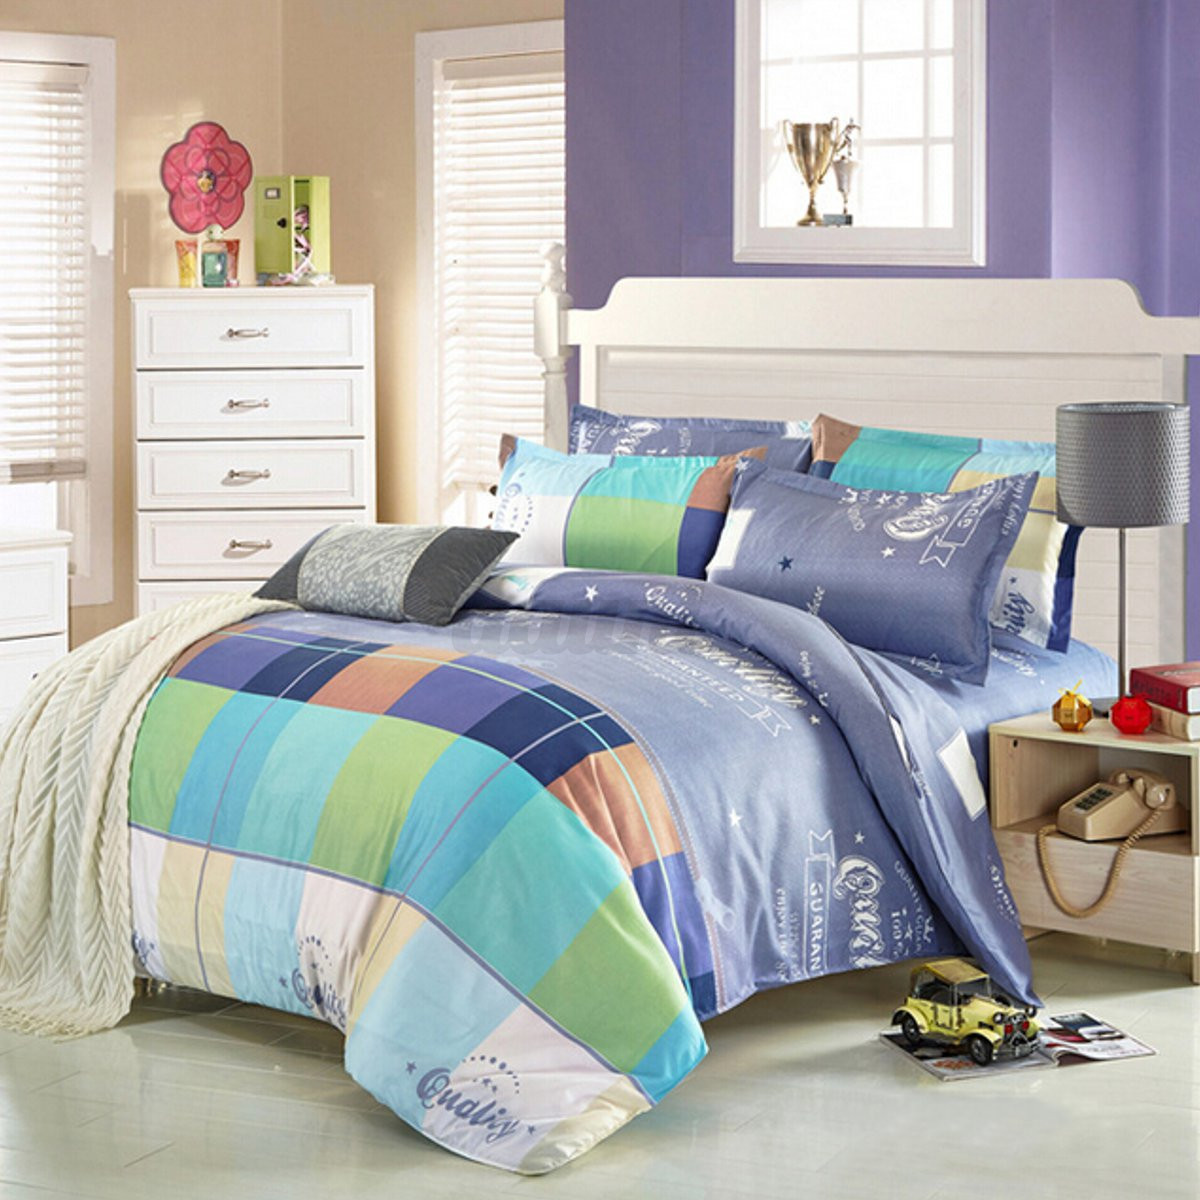 Single double queen king size printing style bedding for Lit queen size taille